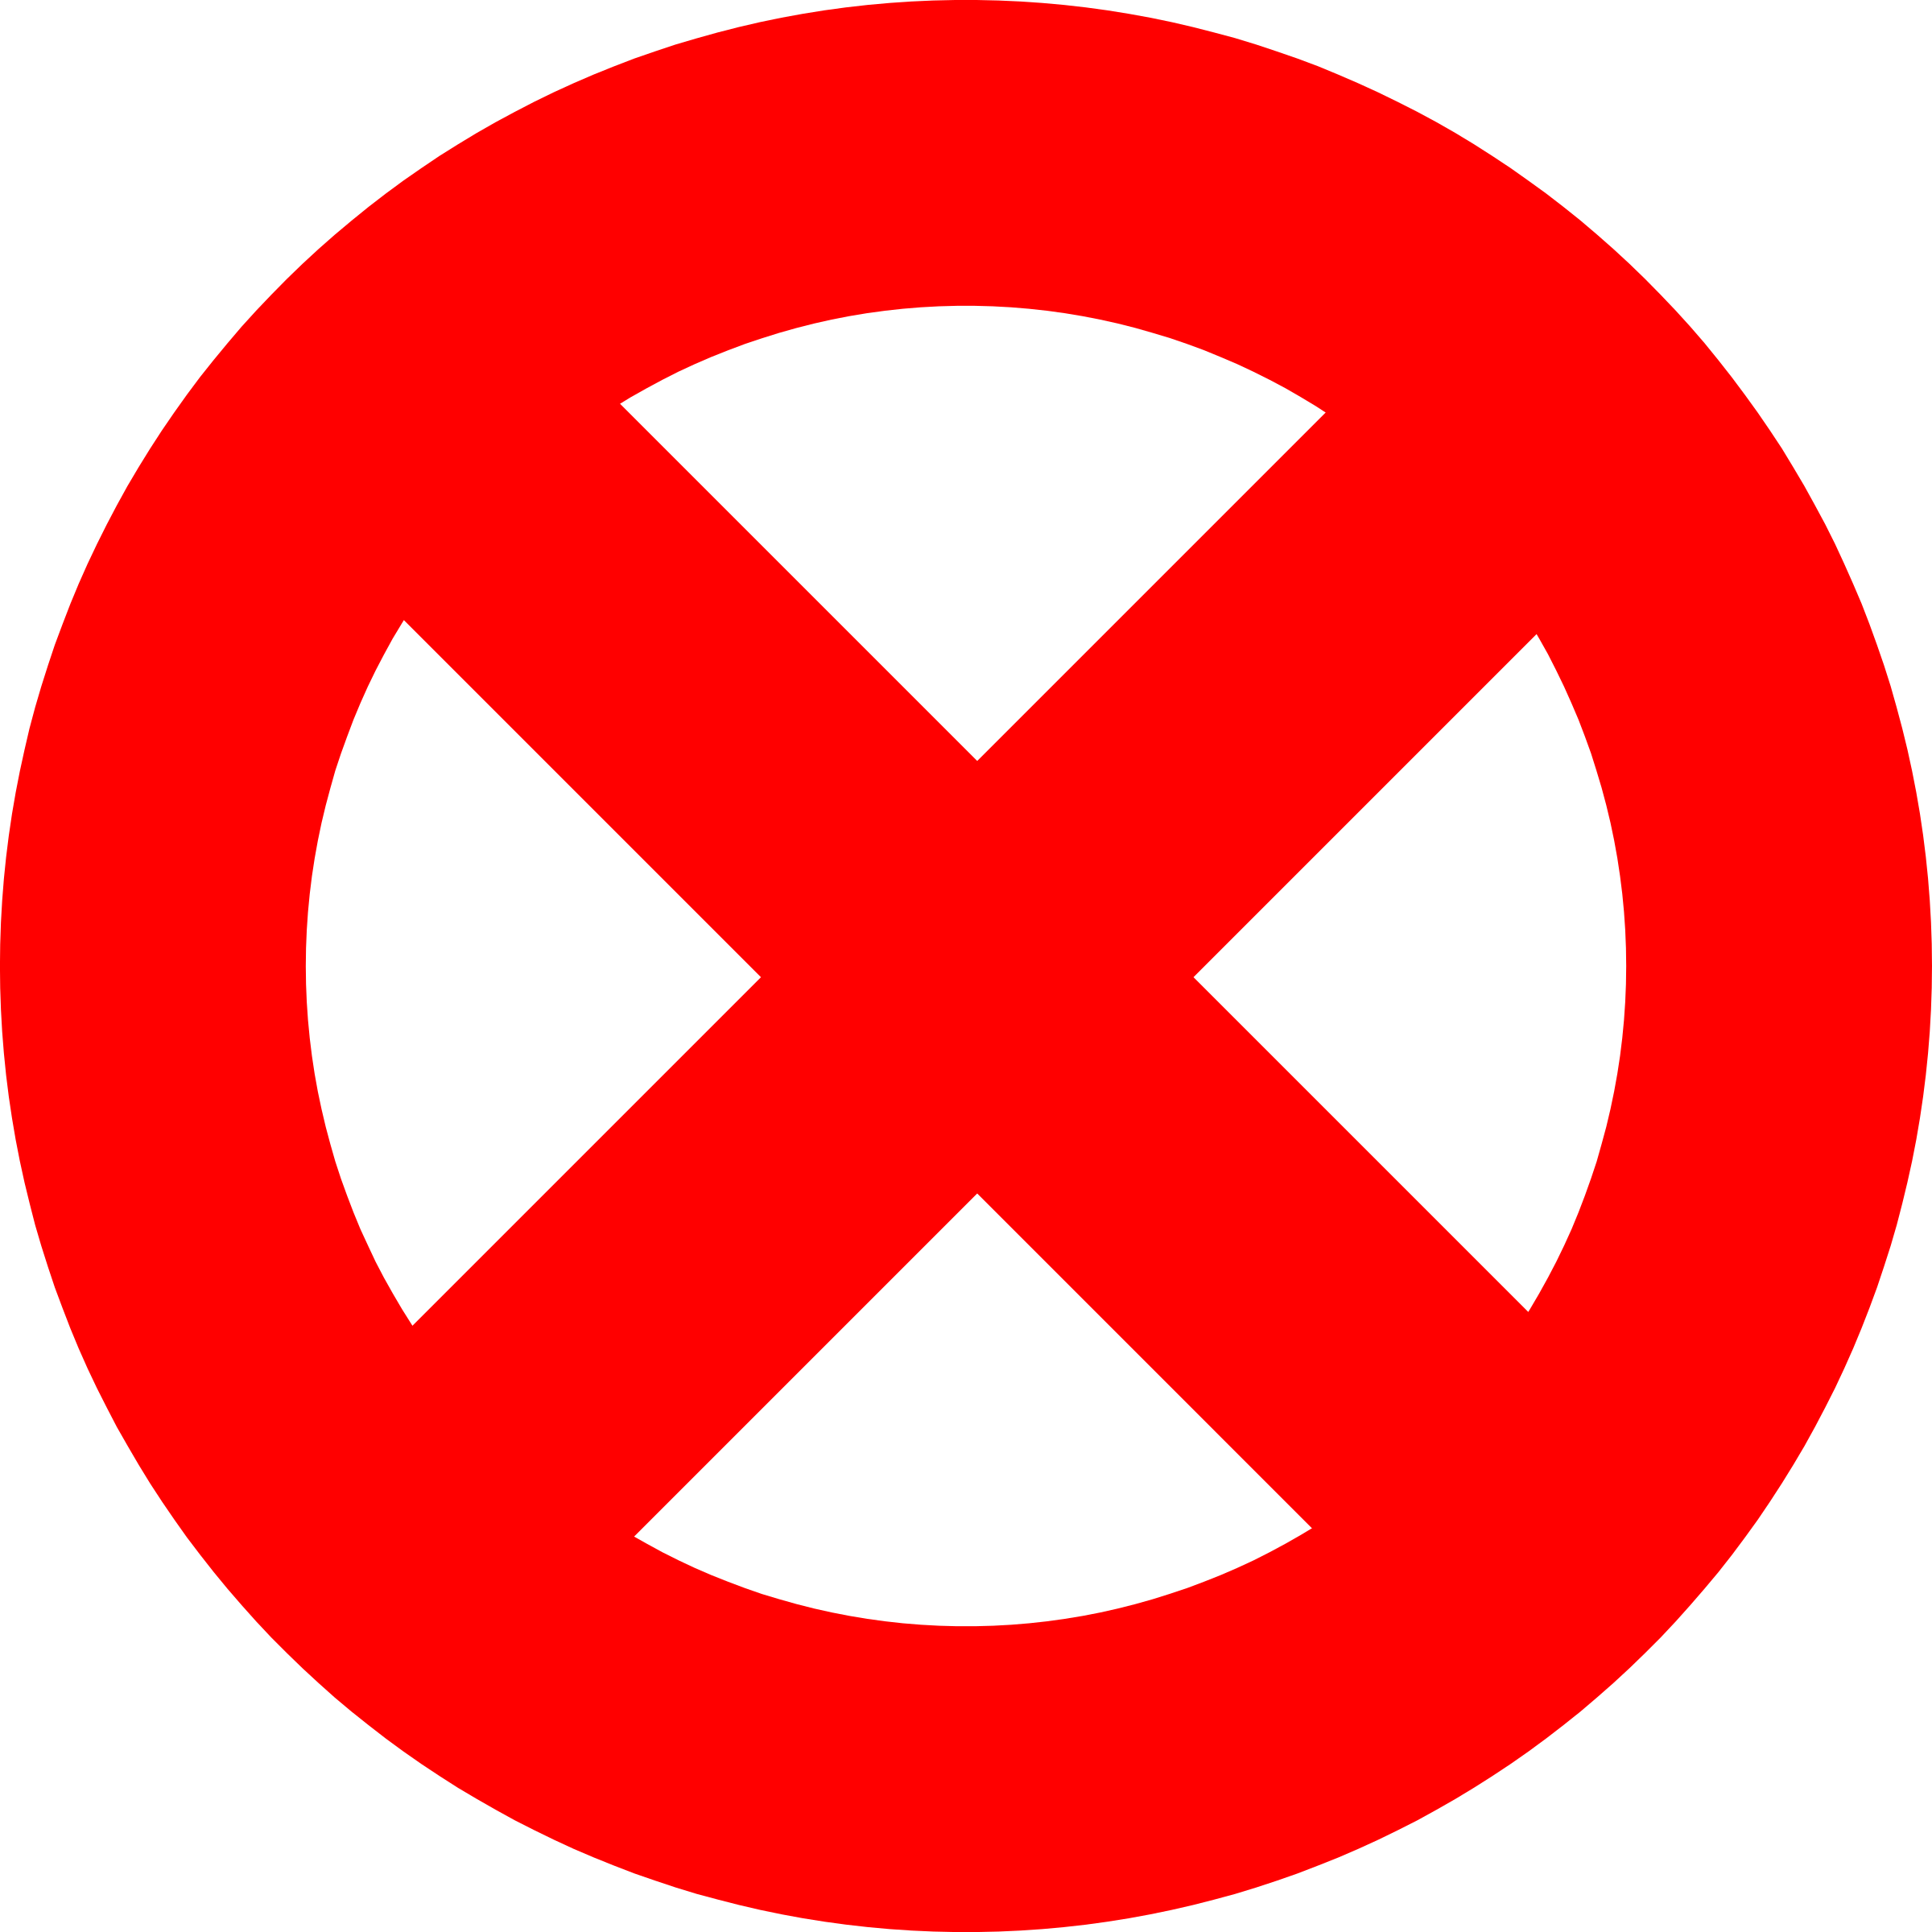 Prohibited Sign Png Pngfest